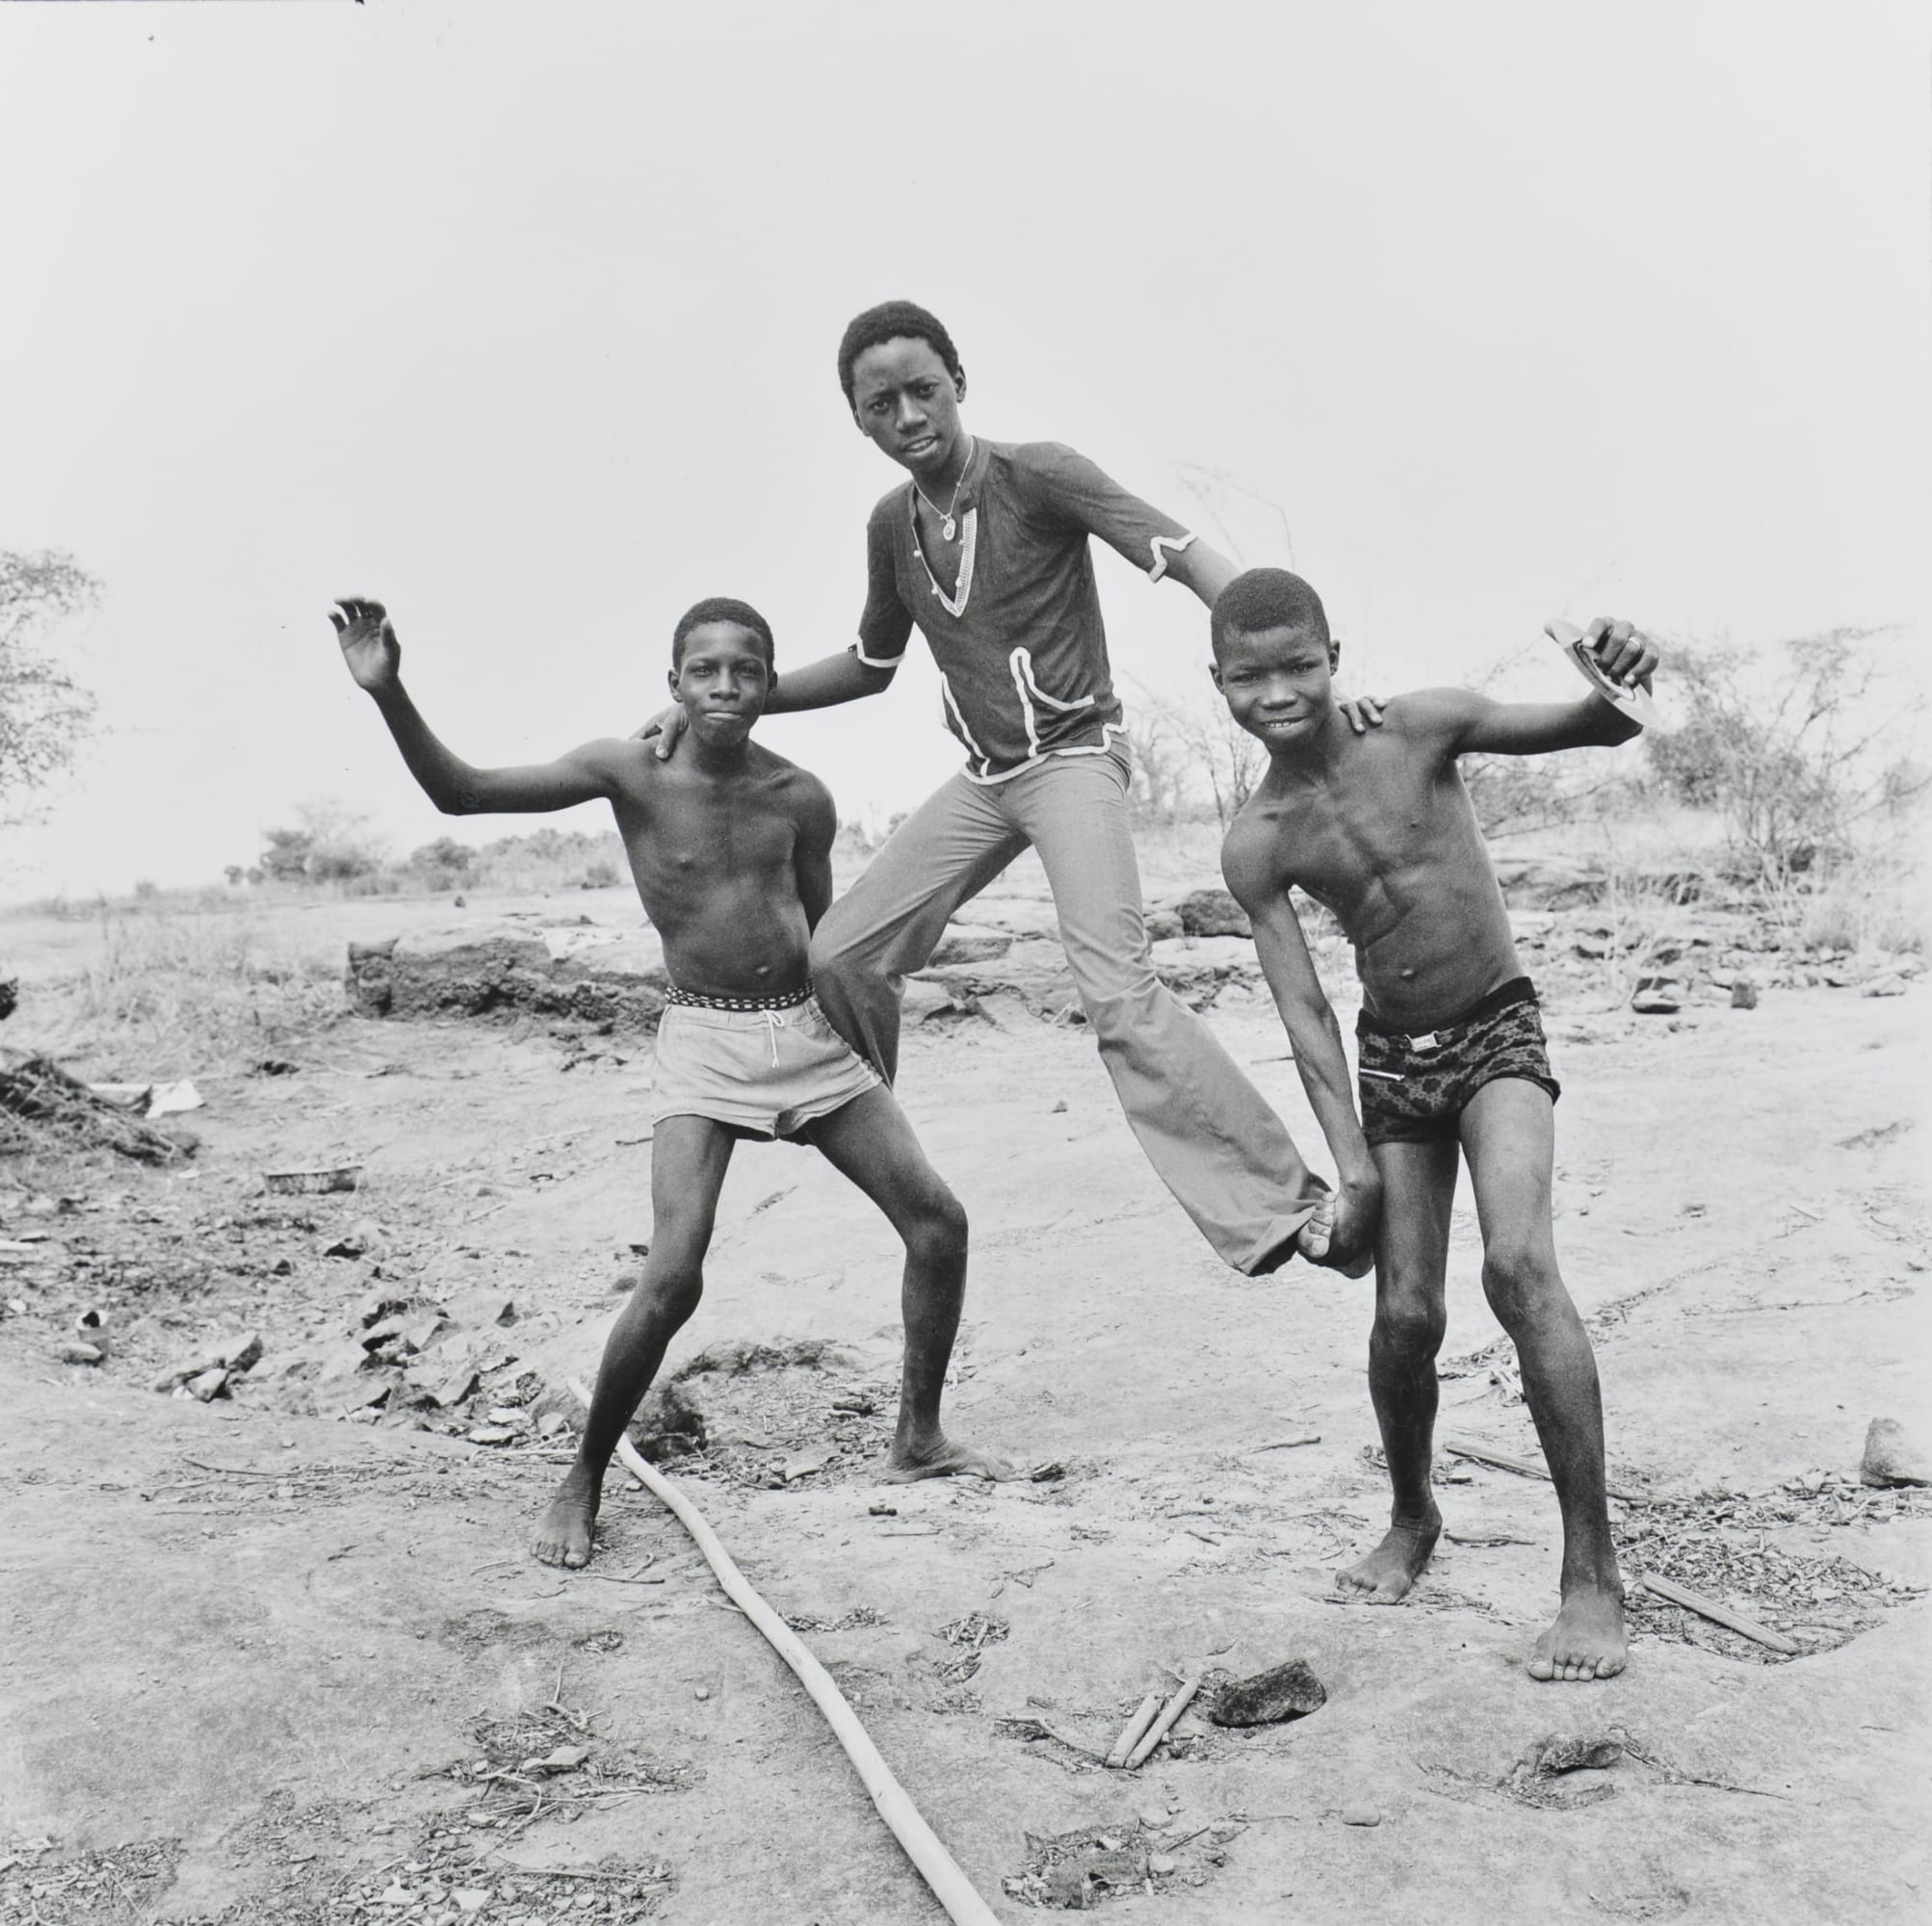 Malick Sidibé - On the Shores of the Niger, 1976